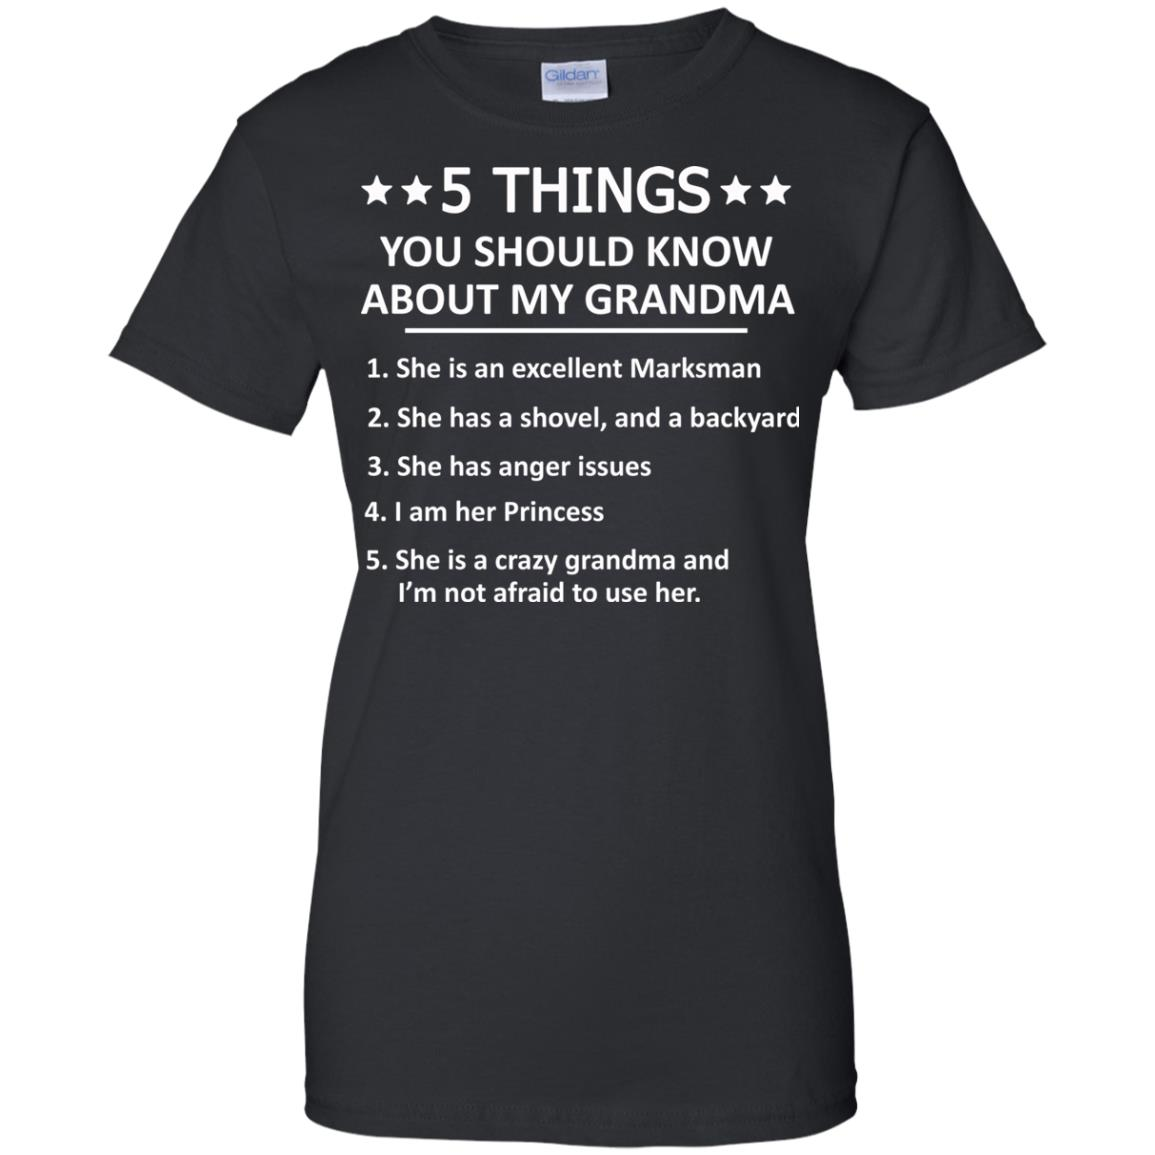 image 1337px 5 Things you should know about my Grandma t shirt, hoodies, tank top